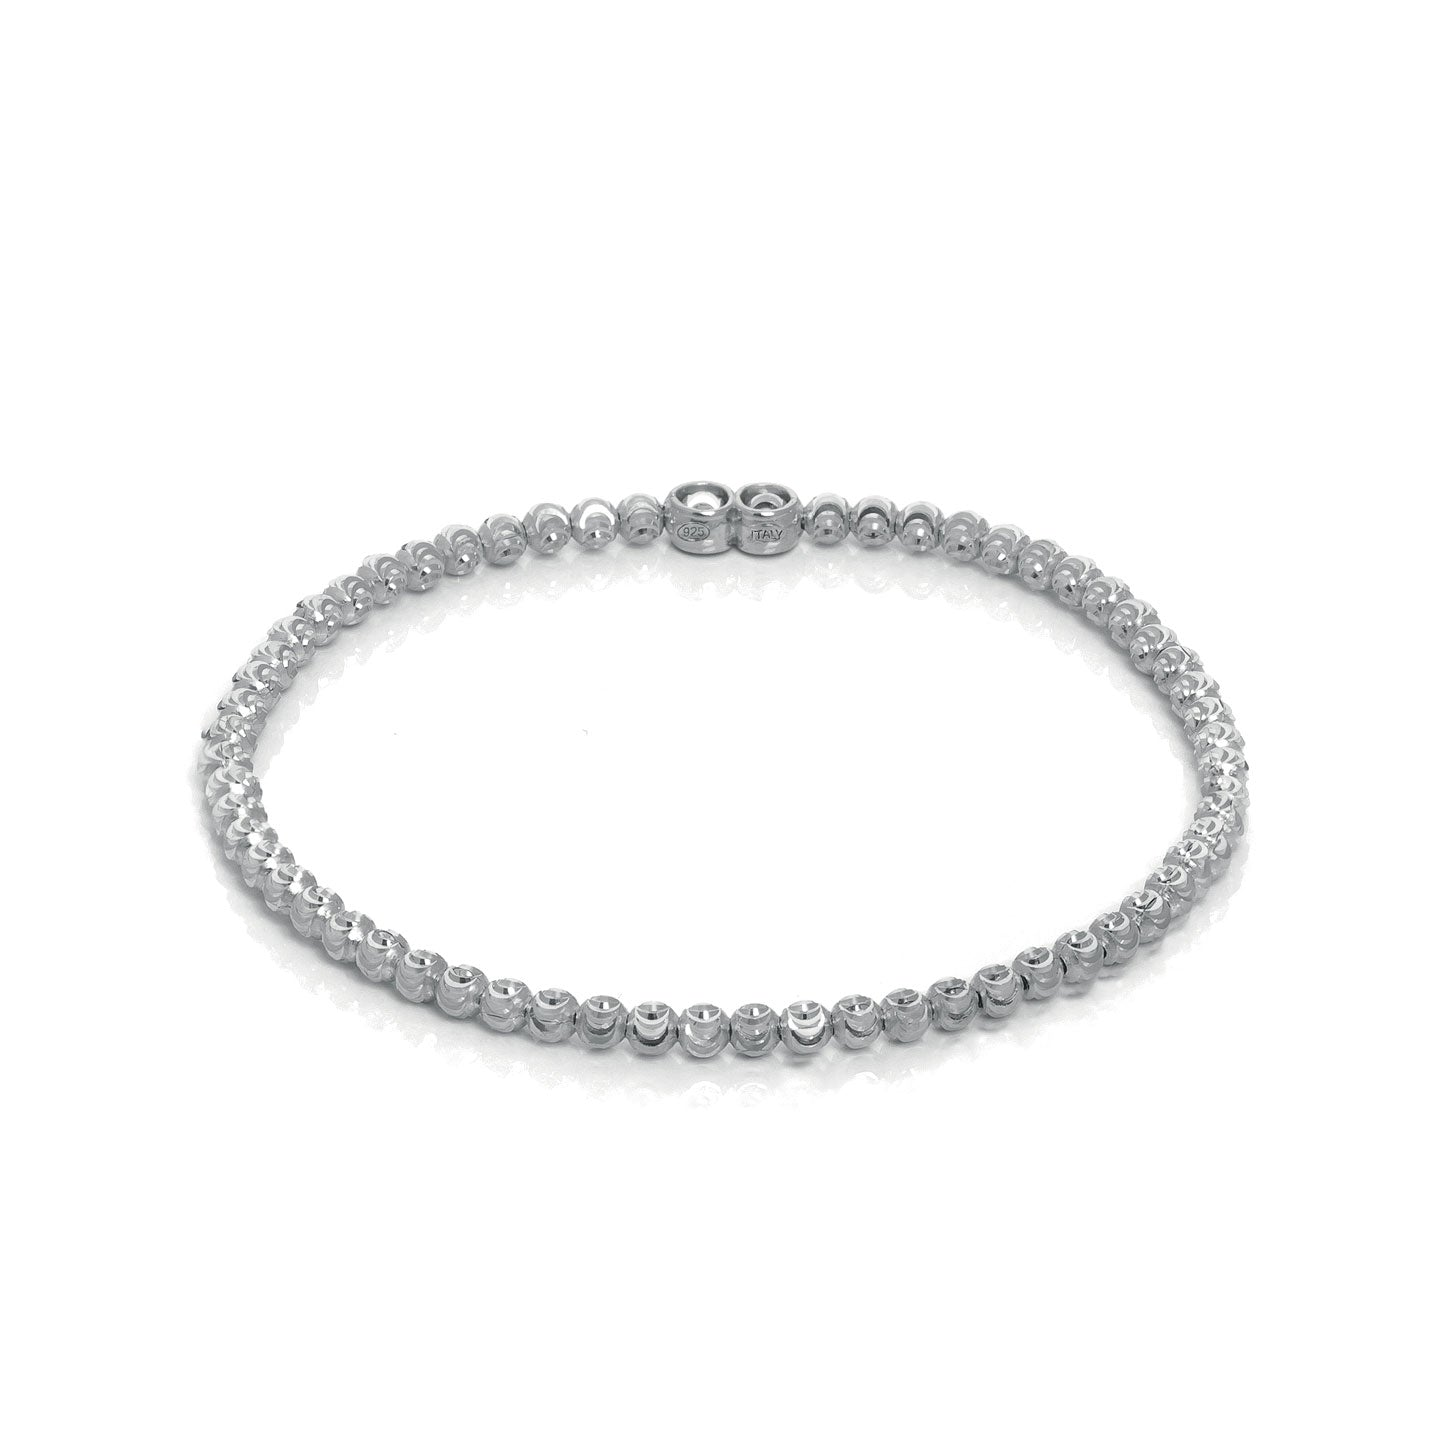 Stretchy Diamond Cut Bead Bracelet, Sterling Silver with Platinum Plating